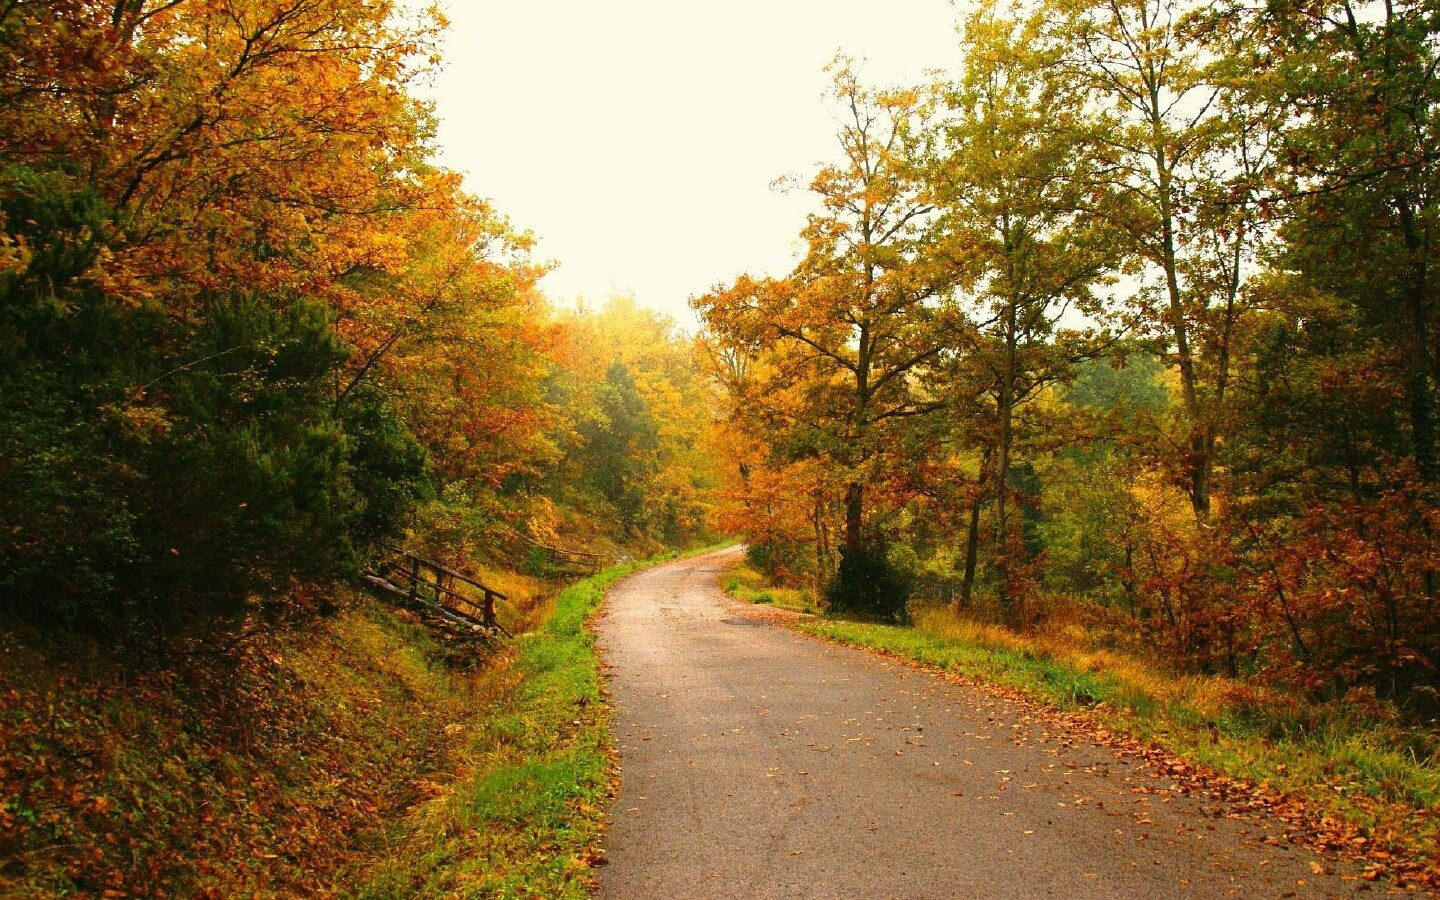 3d Falling Leaves Animated Wallpaper Footpath Through Autumn Forest Wallpapers Footpath